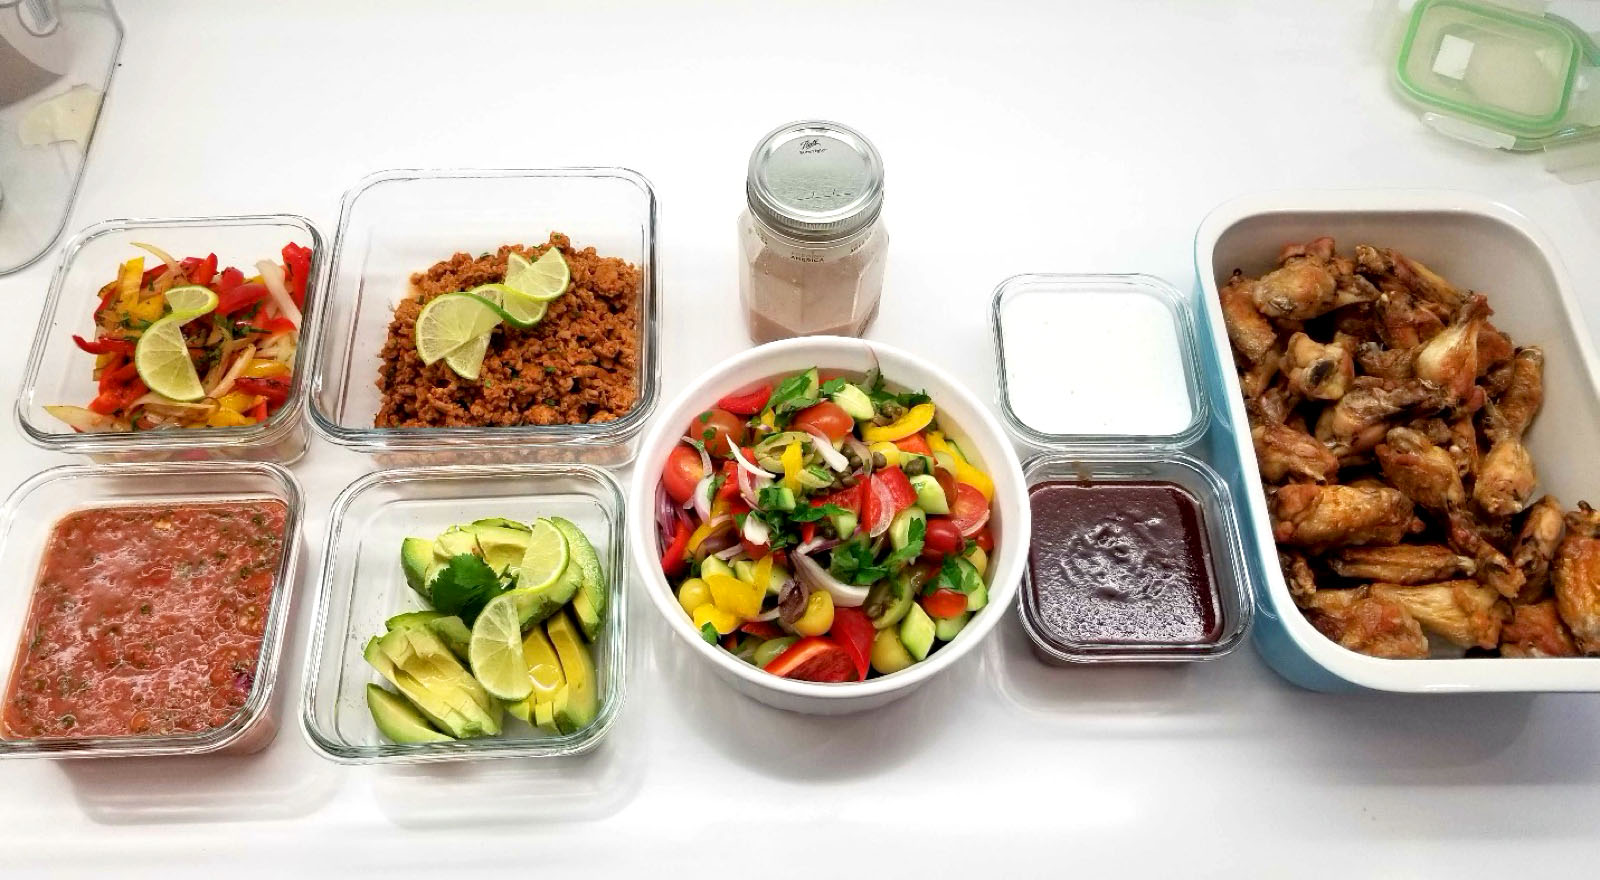 Reusable glass containers of food on a countertop